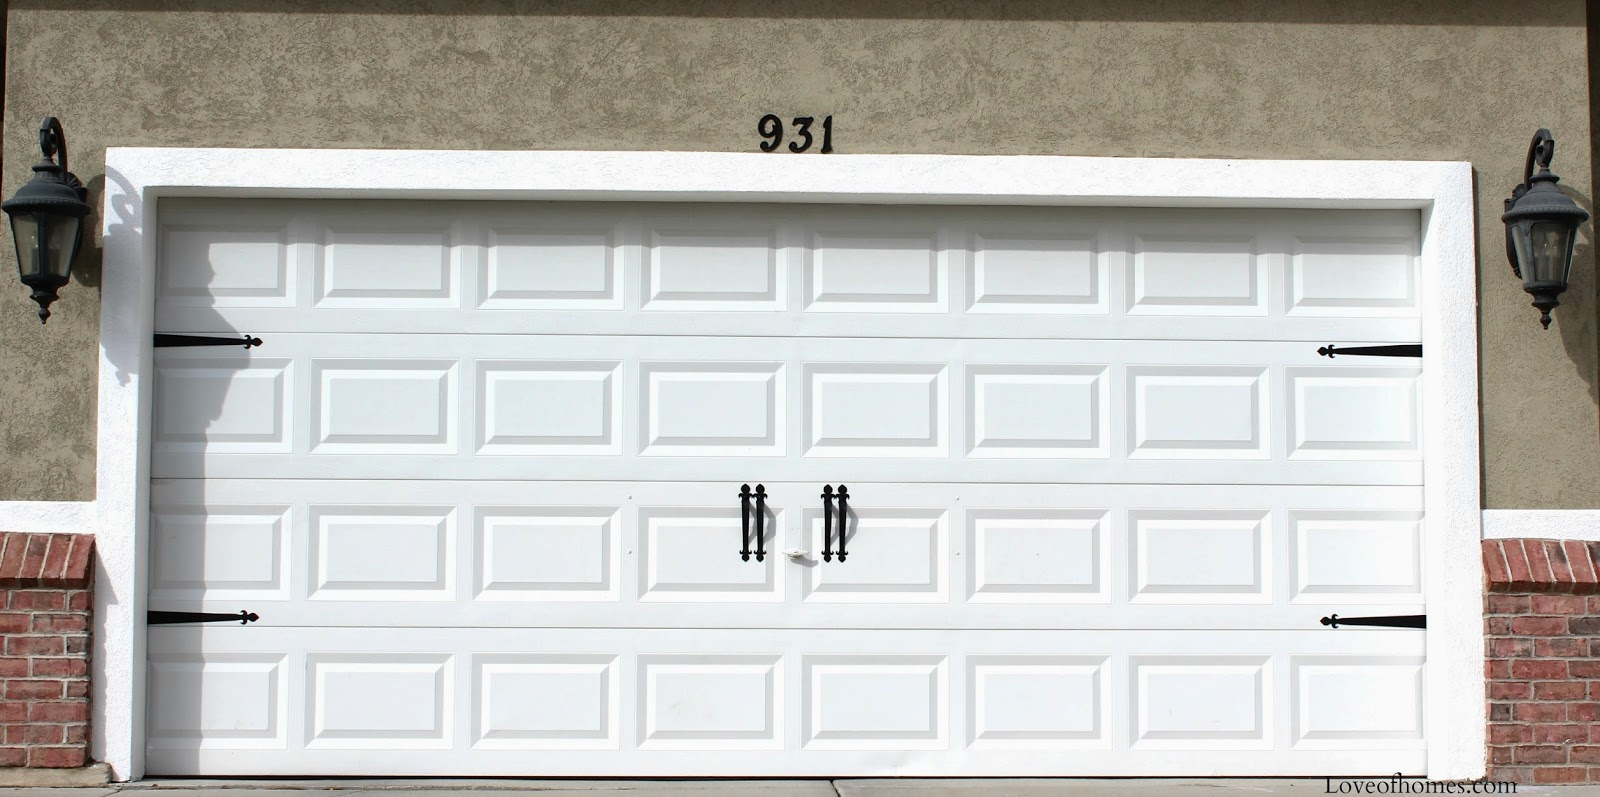 LOVE OF HOMES: Garage Doors...